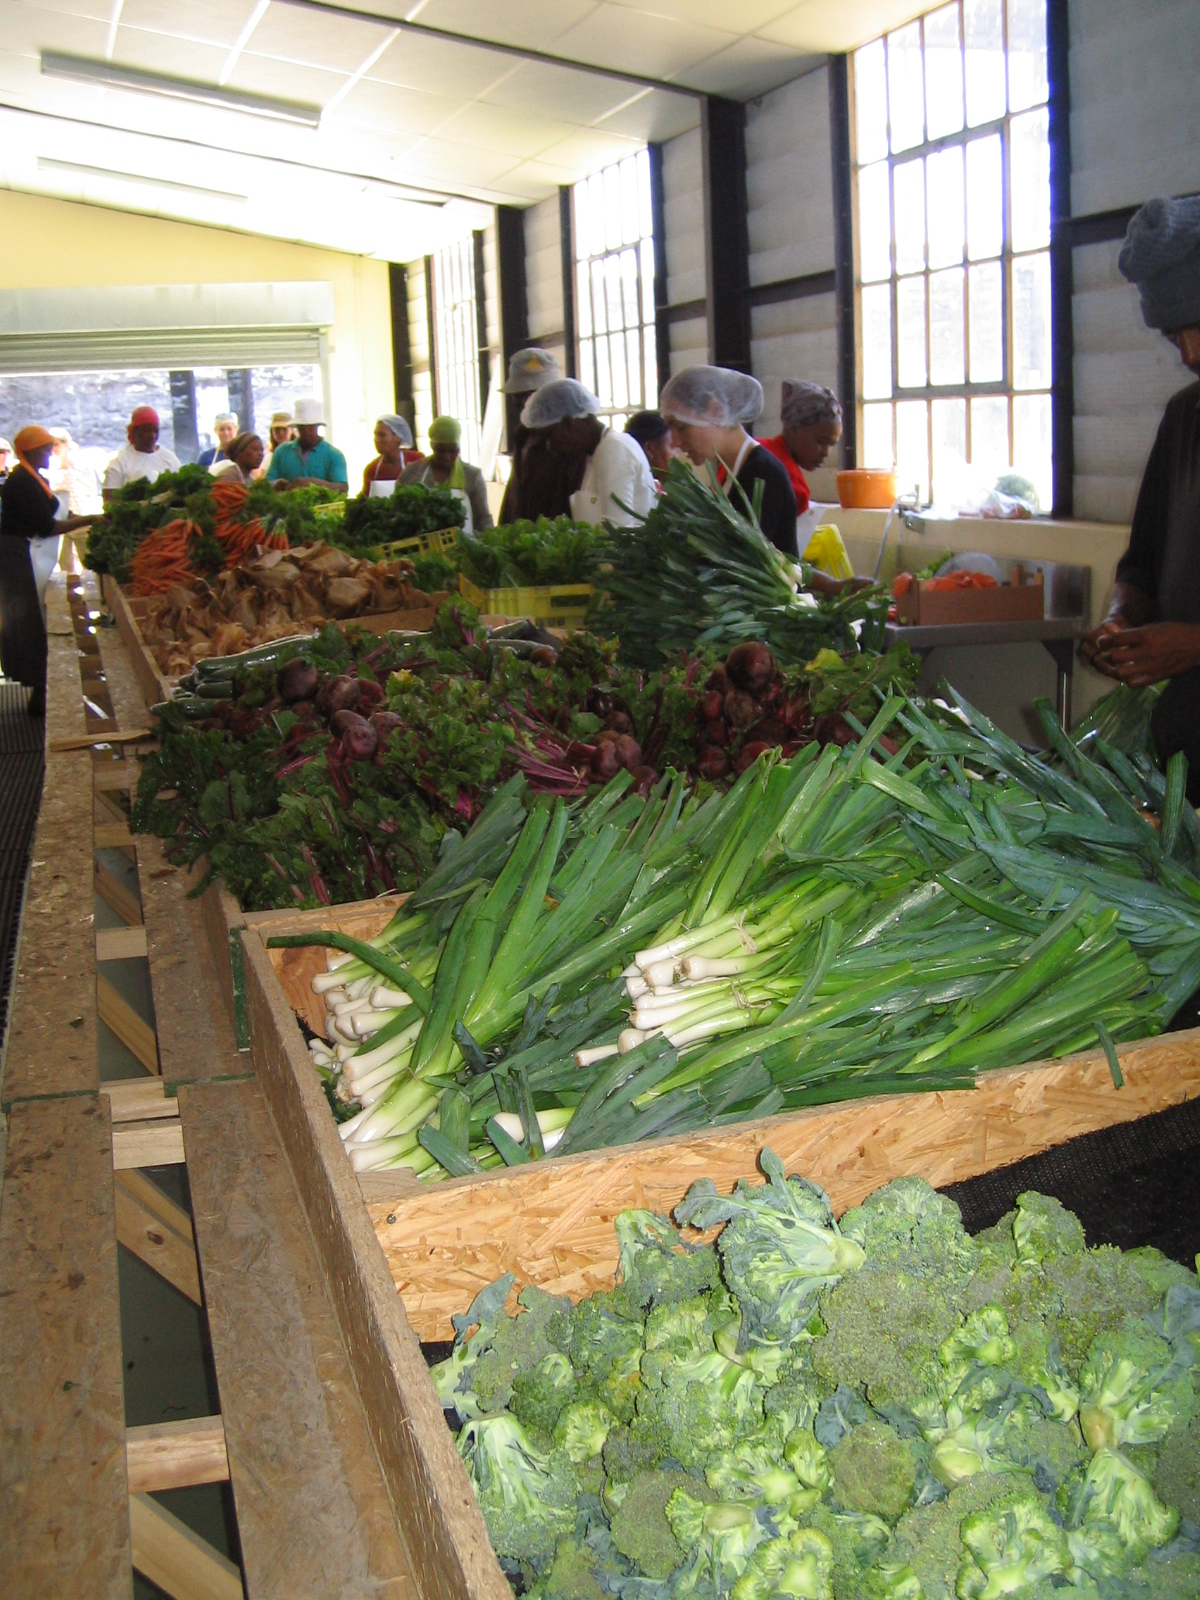 The Harvest of Hope packing shed